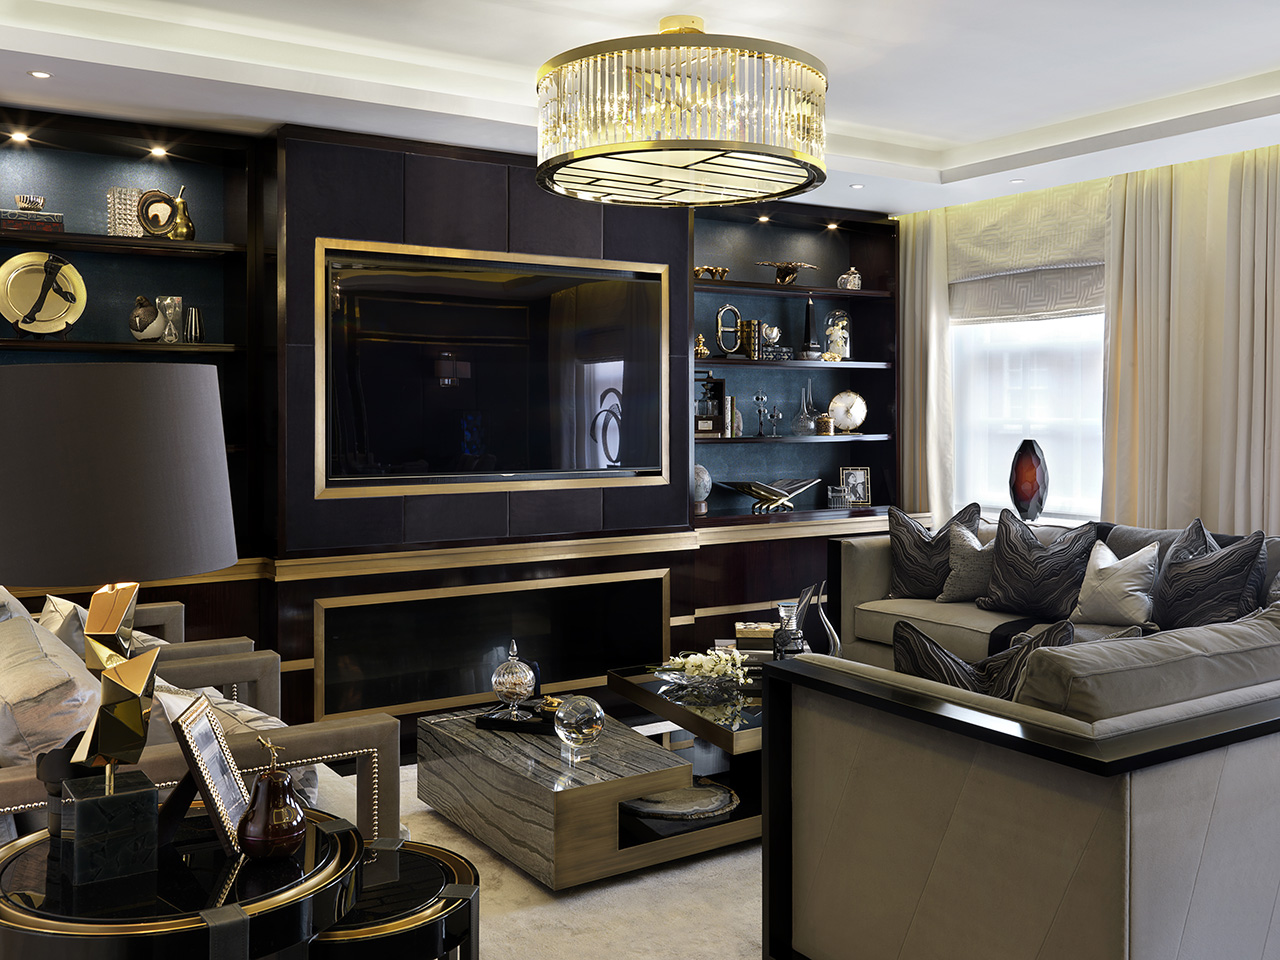 London interiors project residence interior design london - 10 Luxury Living Room Decoration By Katharine Pooley